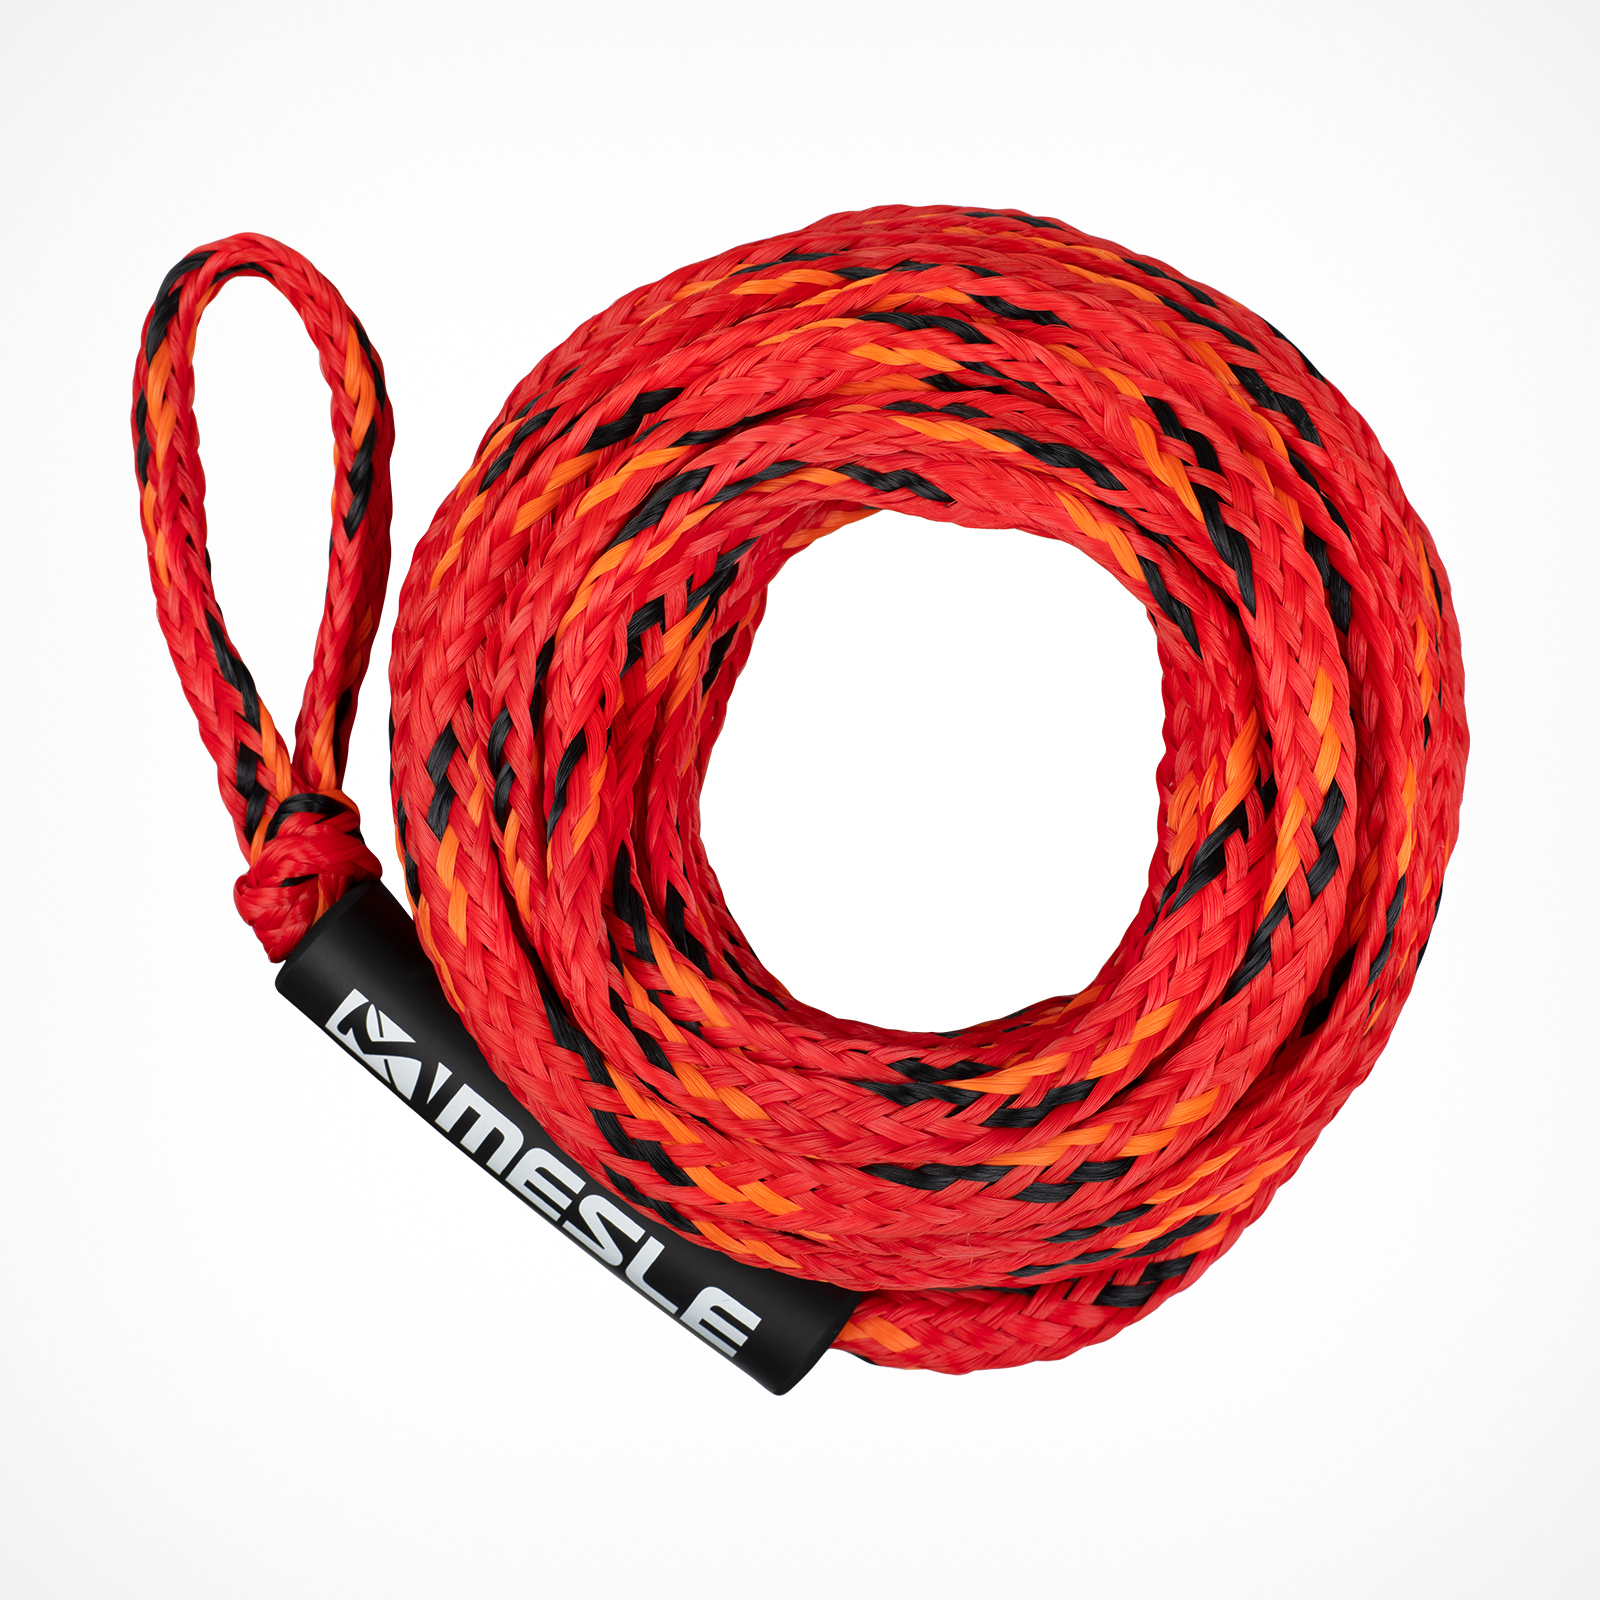 MESLE Tow Rope for 3 Persons towable Tubes in red-orange